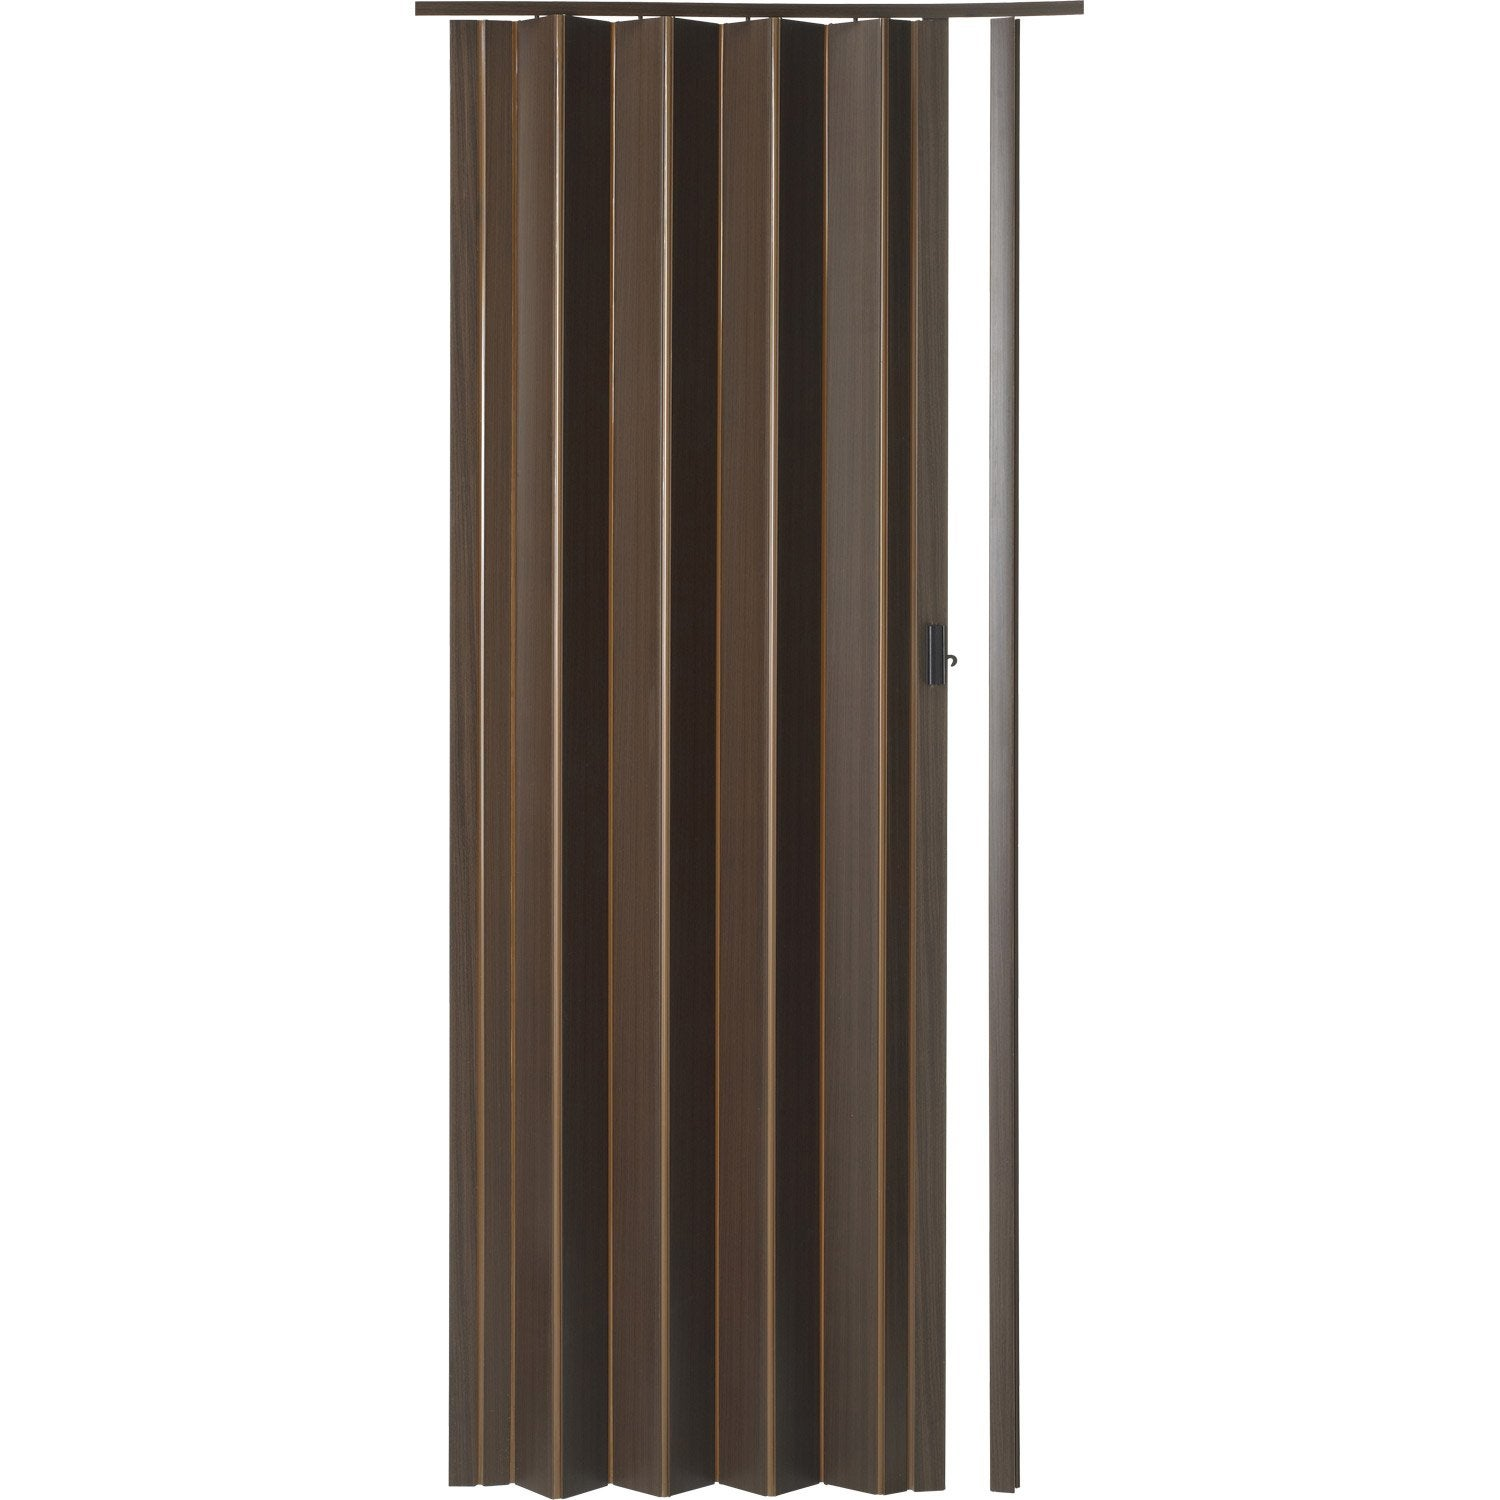 Porte accordeon sur mesure for Lapeyre porte interieure sur mesure